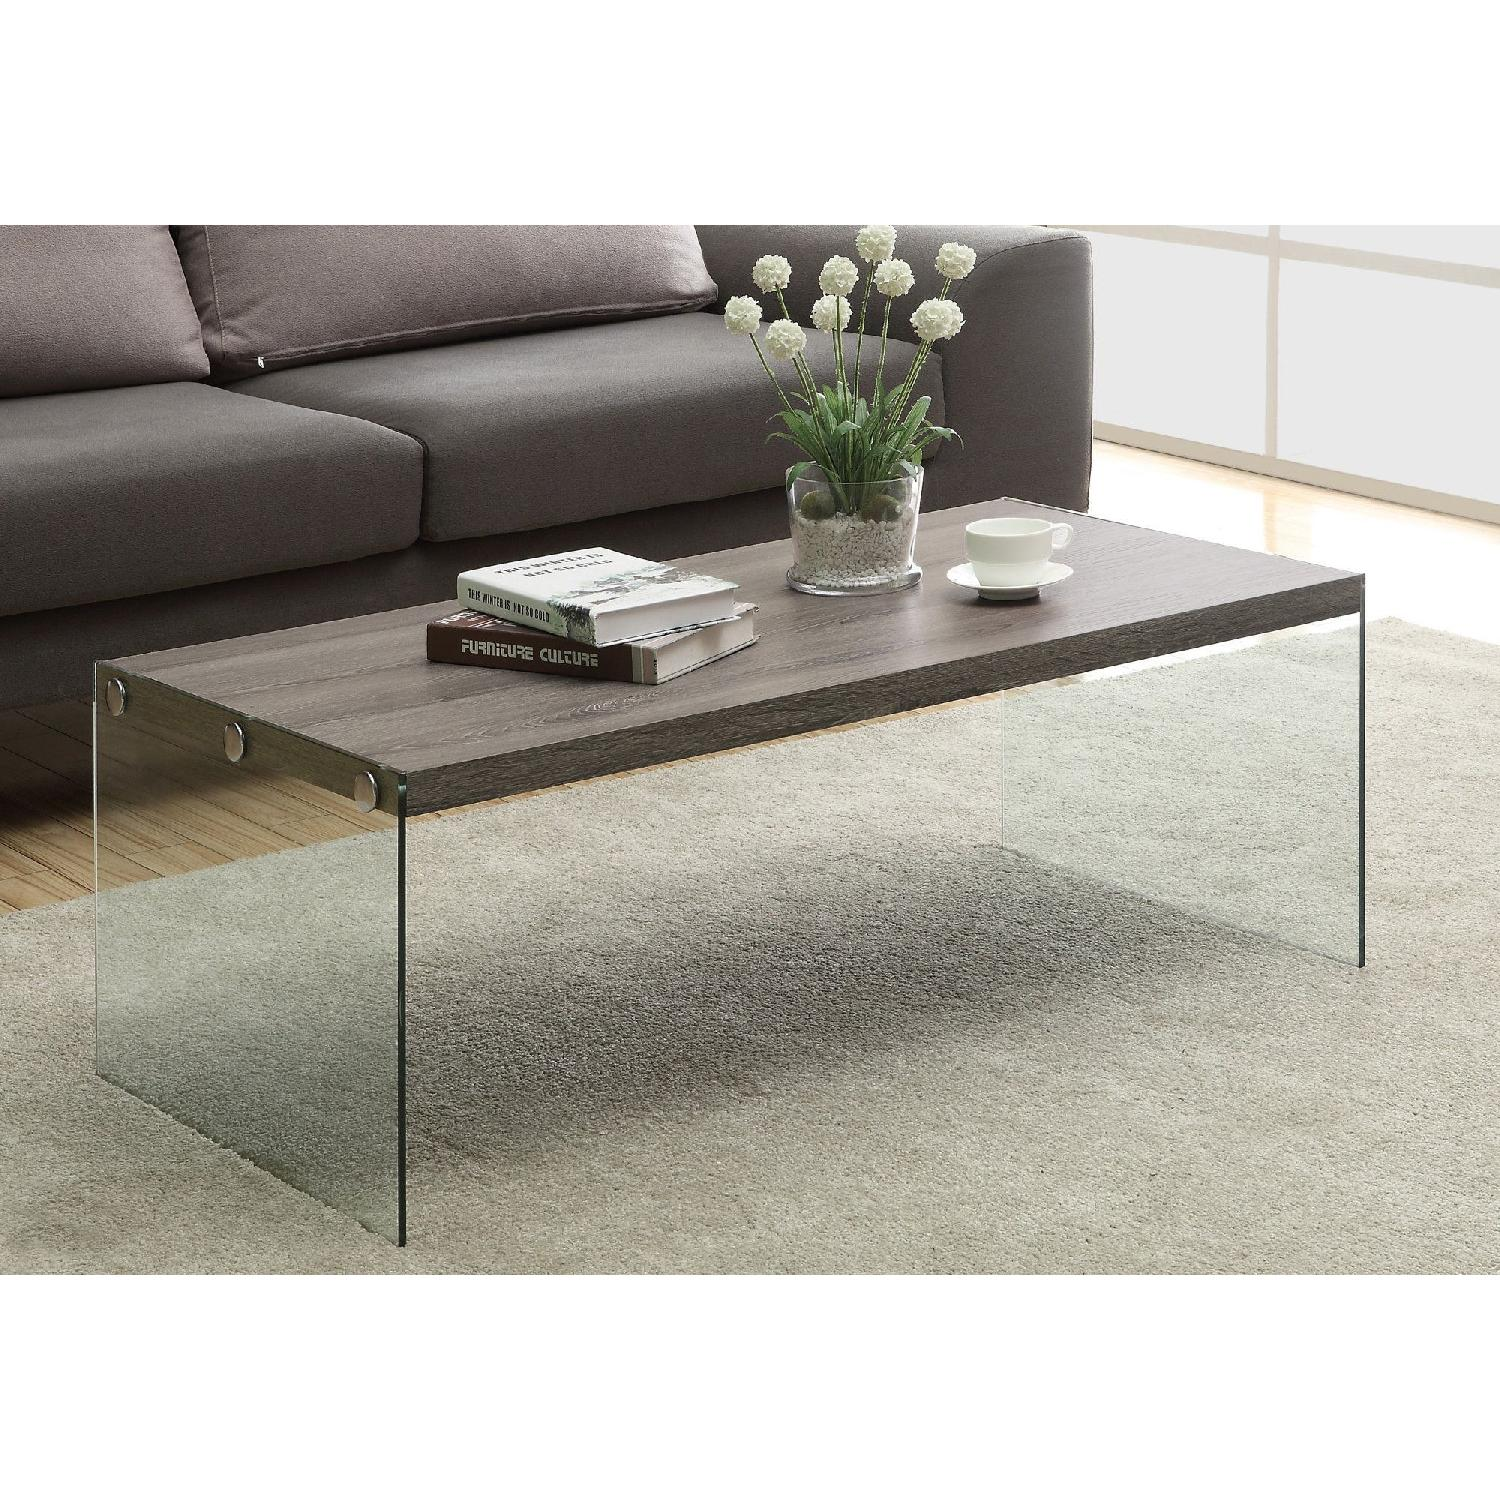 Monarch Dark Taupe Coffee Table w/ Tempered Glass Legs - image-1